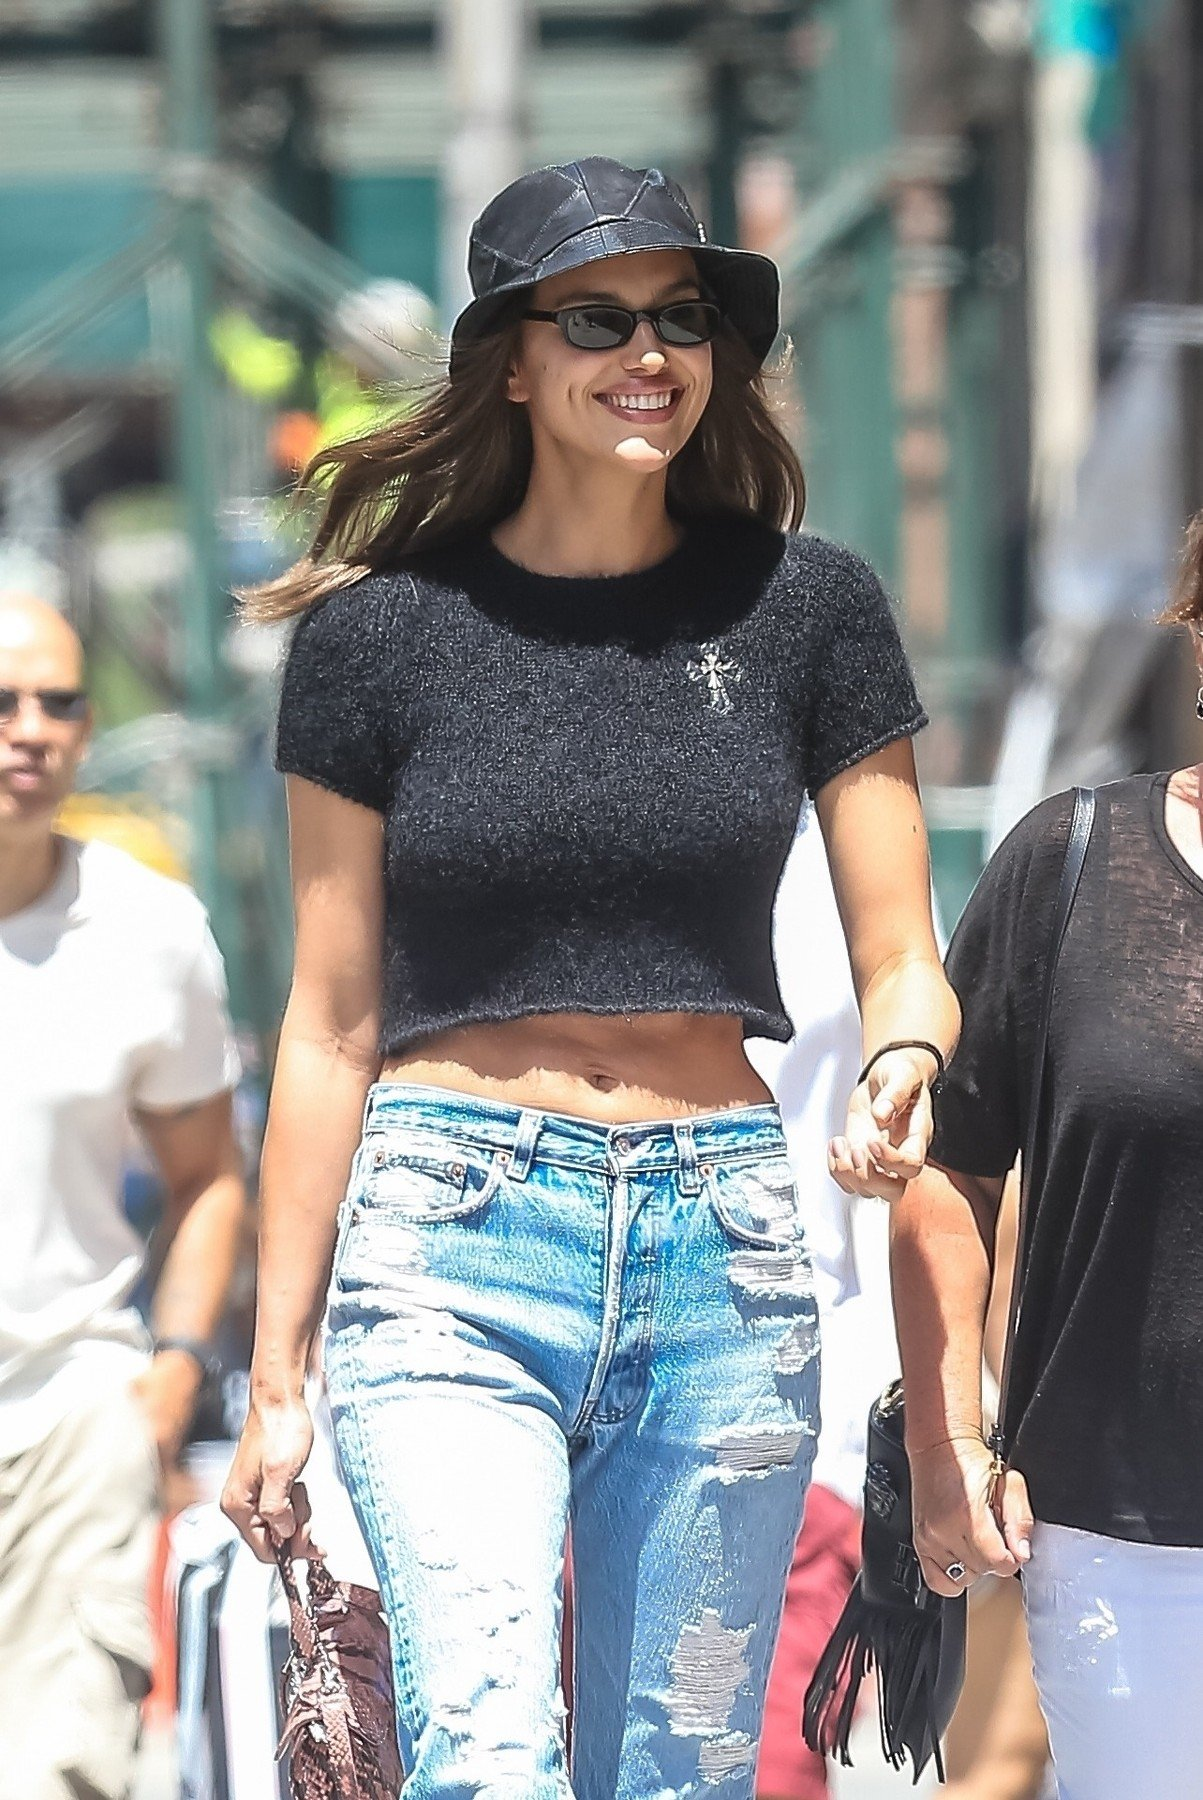 New York, NY  - Irina Shayk looks stunning showing off her toned abs in a crop top while out with her mother in the Big Apple.  *UK Clients - Pictures Containing Children Please Pixelate Face Prior To Publication*, Image: 451170234, License: Rights-managed, Restrictions: , Model Release: no, Credit line: Profimedia, Backgrid USA